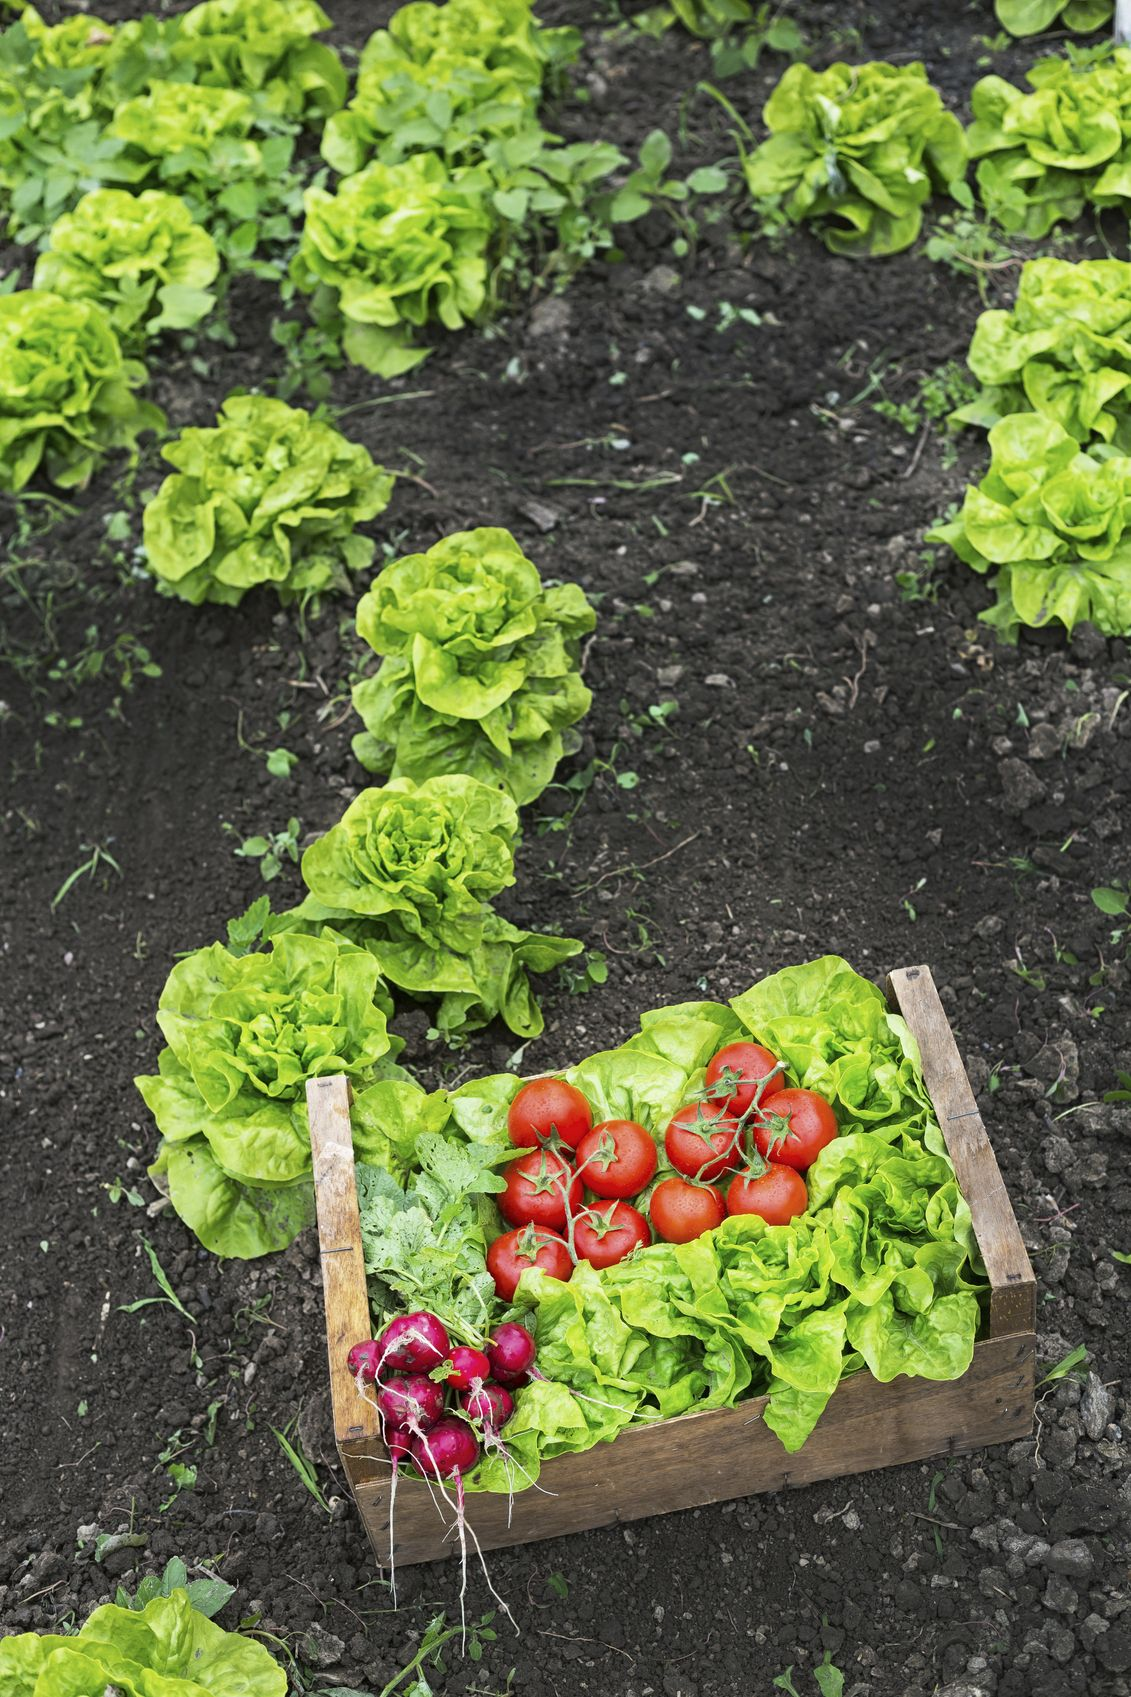 Get Started Growing Your Own Food Grow your own food